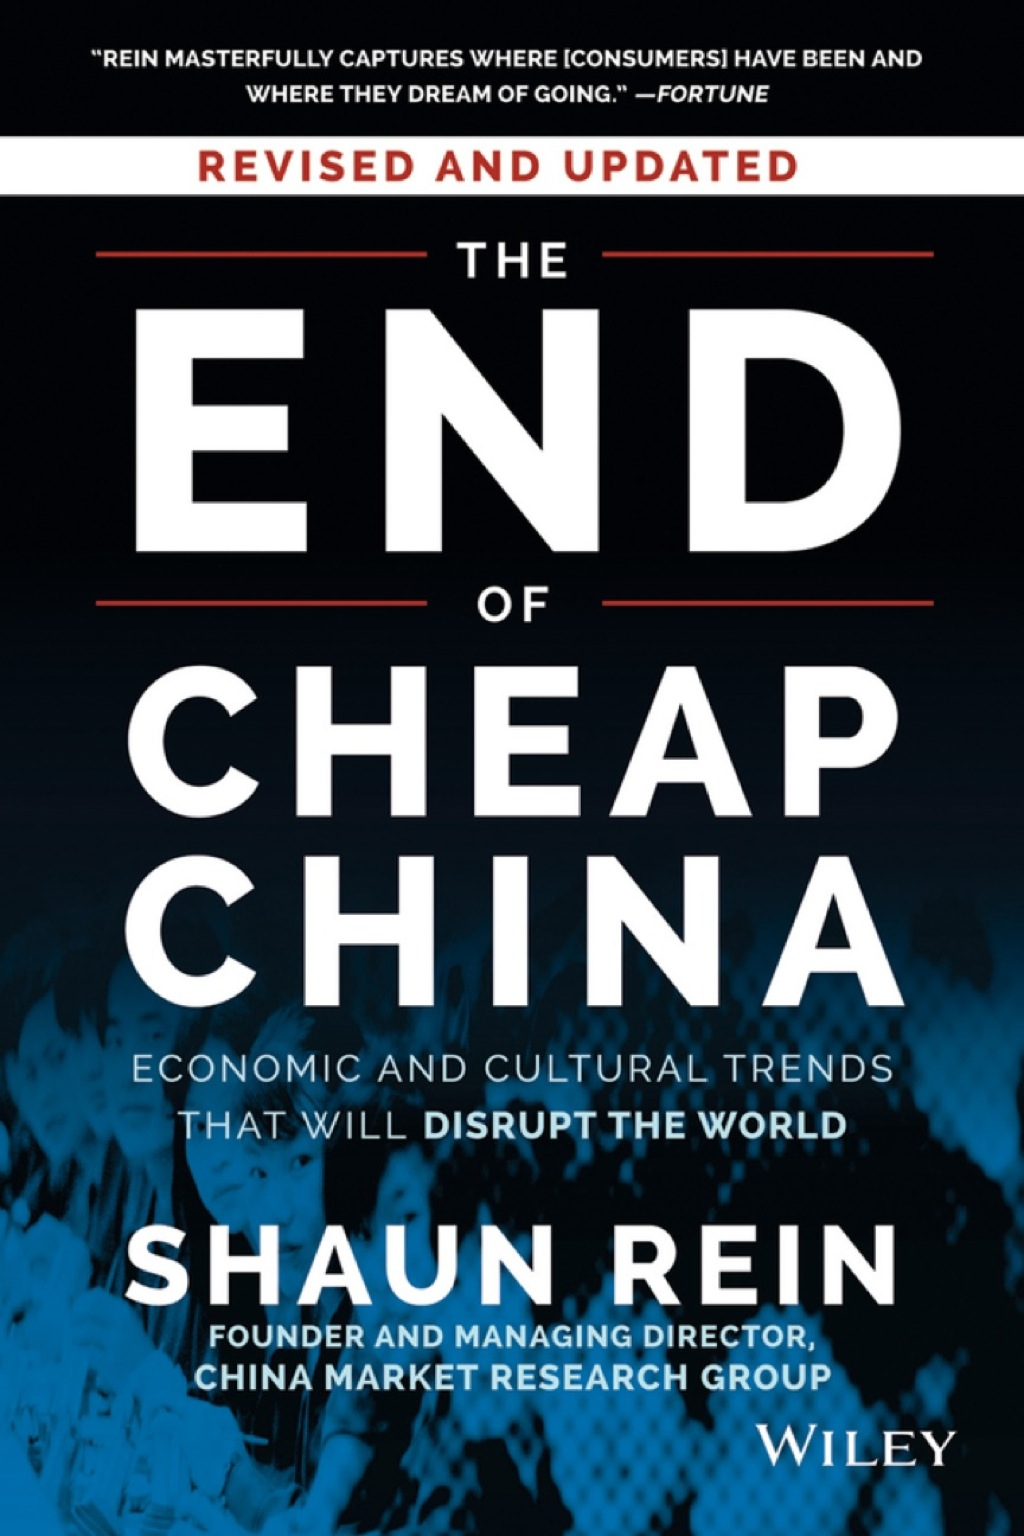 The End of Cheap China: Economic and Cultural Trends that Will Disrupt the World (ebook) eBooks